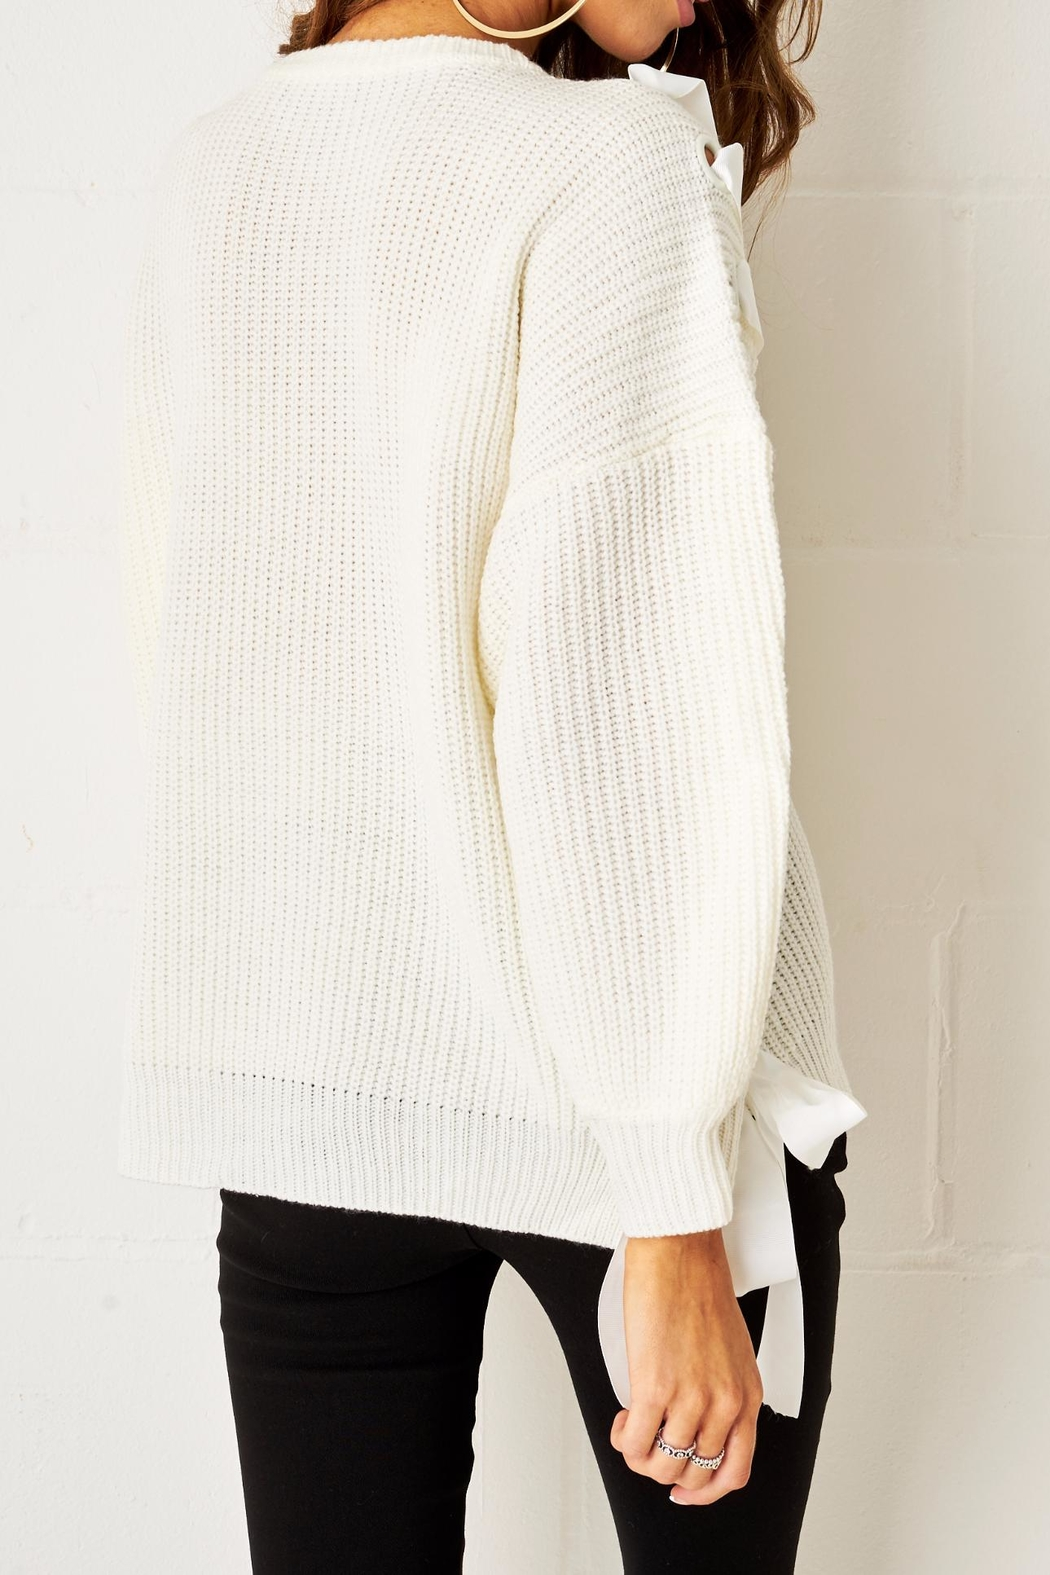 frontrow Lace Up Sweater - Side Cropped Image